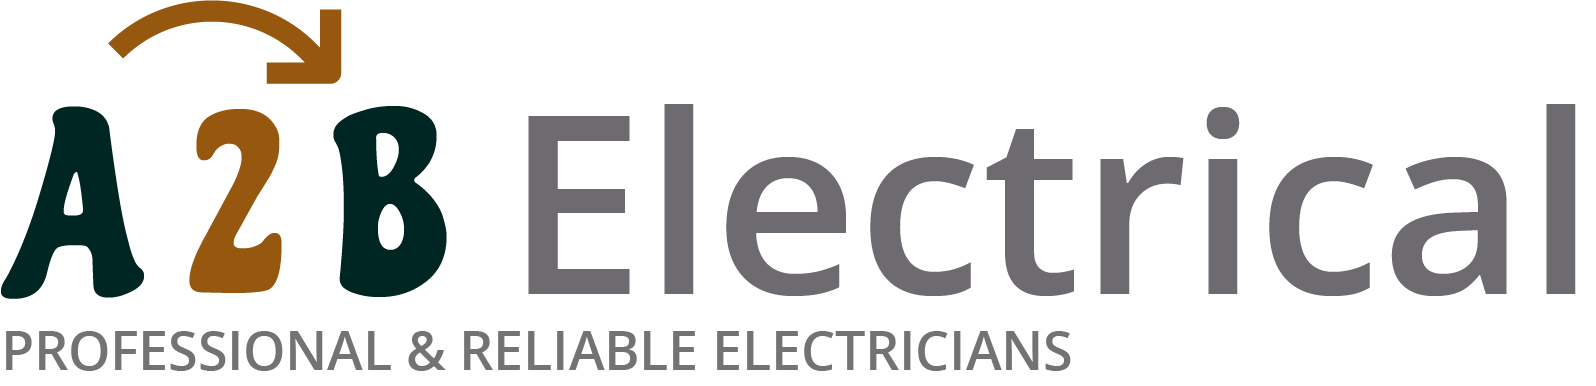 If you have electrical wiring problems in Newington, we can provide an electrician to have a look for you.